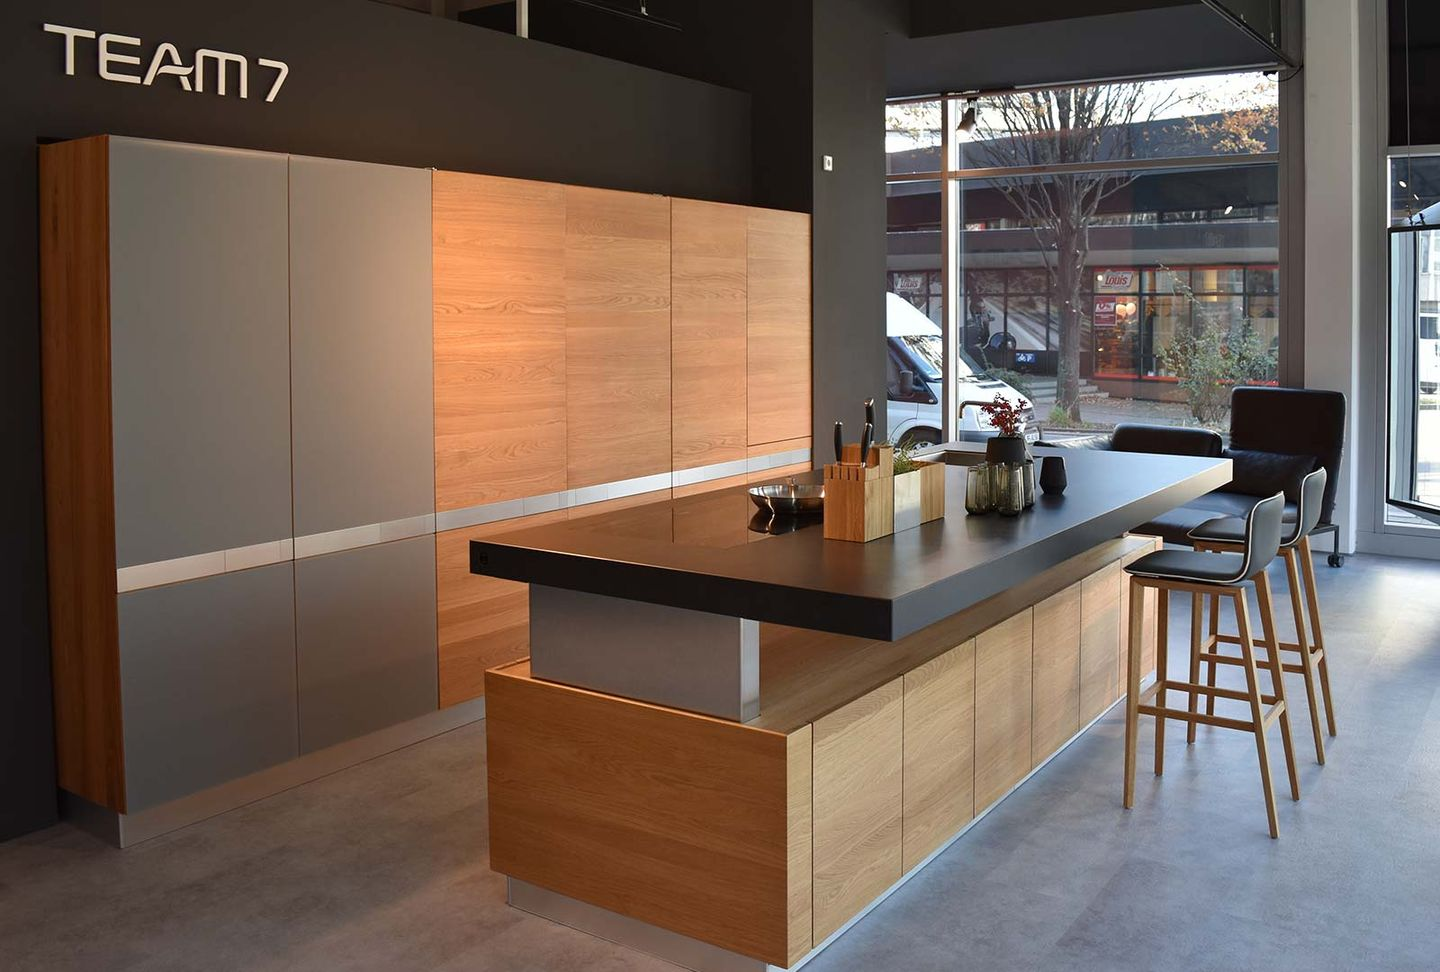 k7 kitchen island at TEAM 7 store Stuttgart